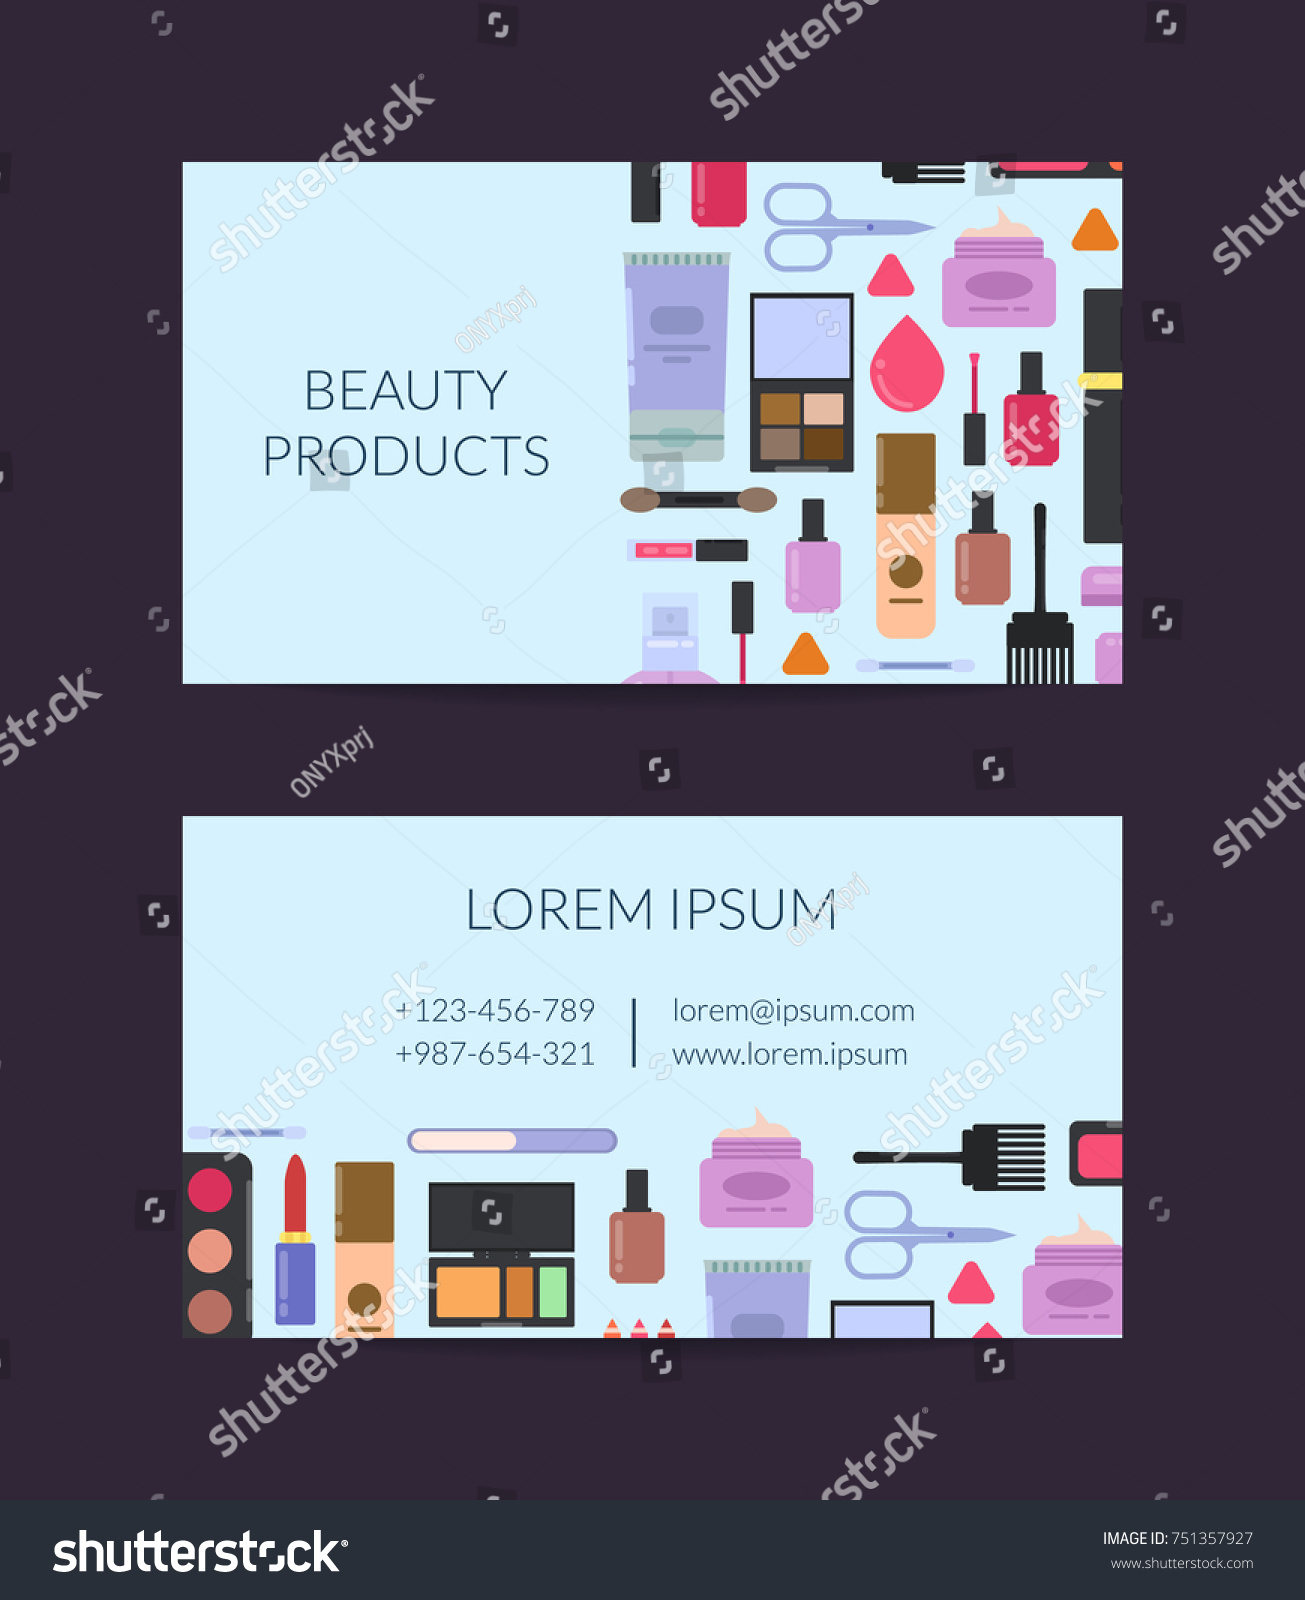 Magnificent Skin Care Business Cards Photos - Business Card Ideas ...